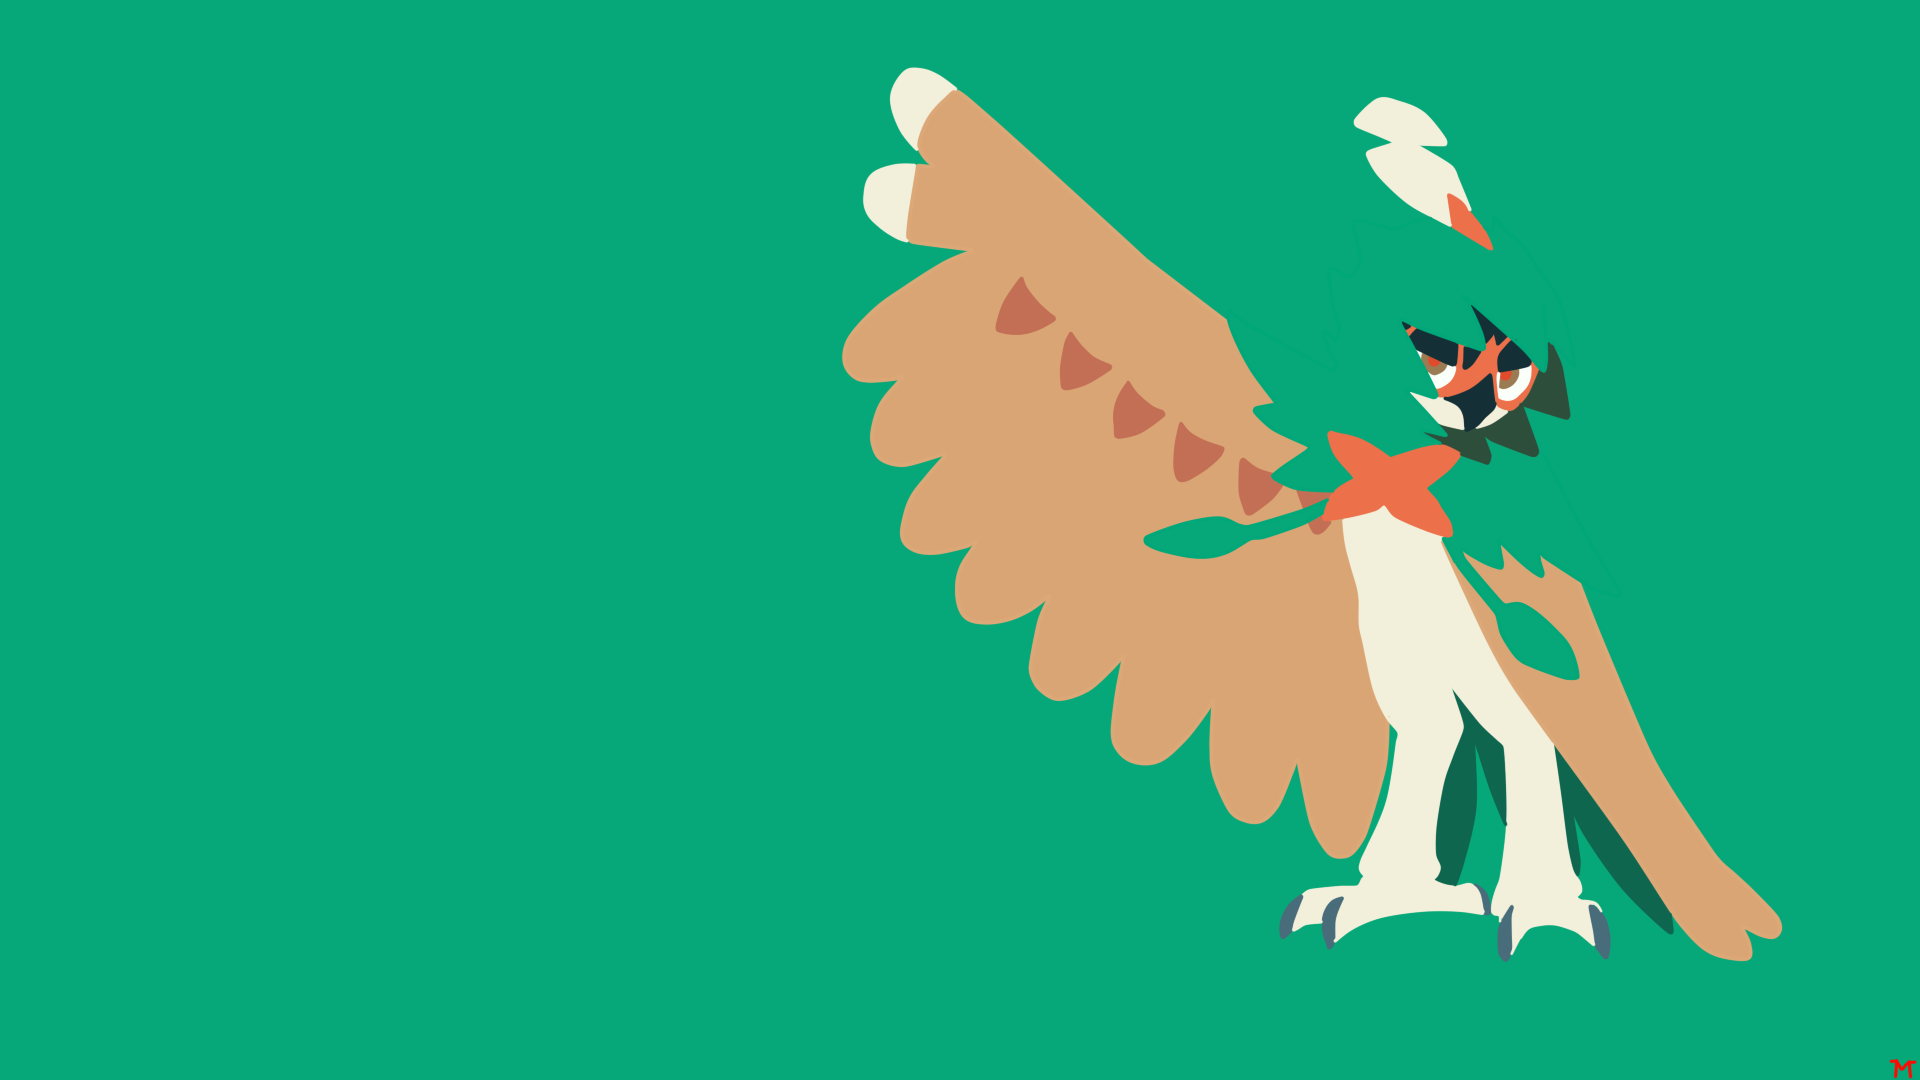 Decidueye minimalistic wallpaper by morshute on deviantart for Deviantart minimal wallpaper